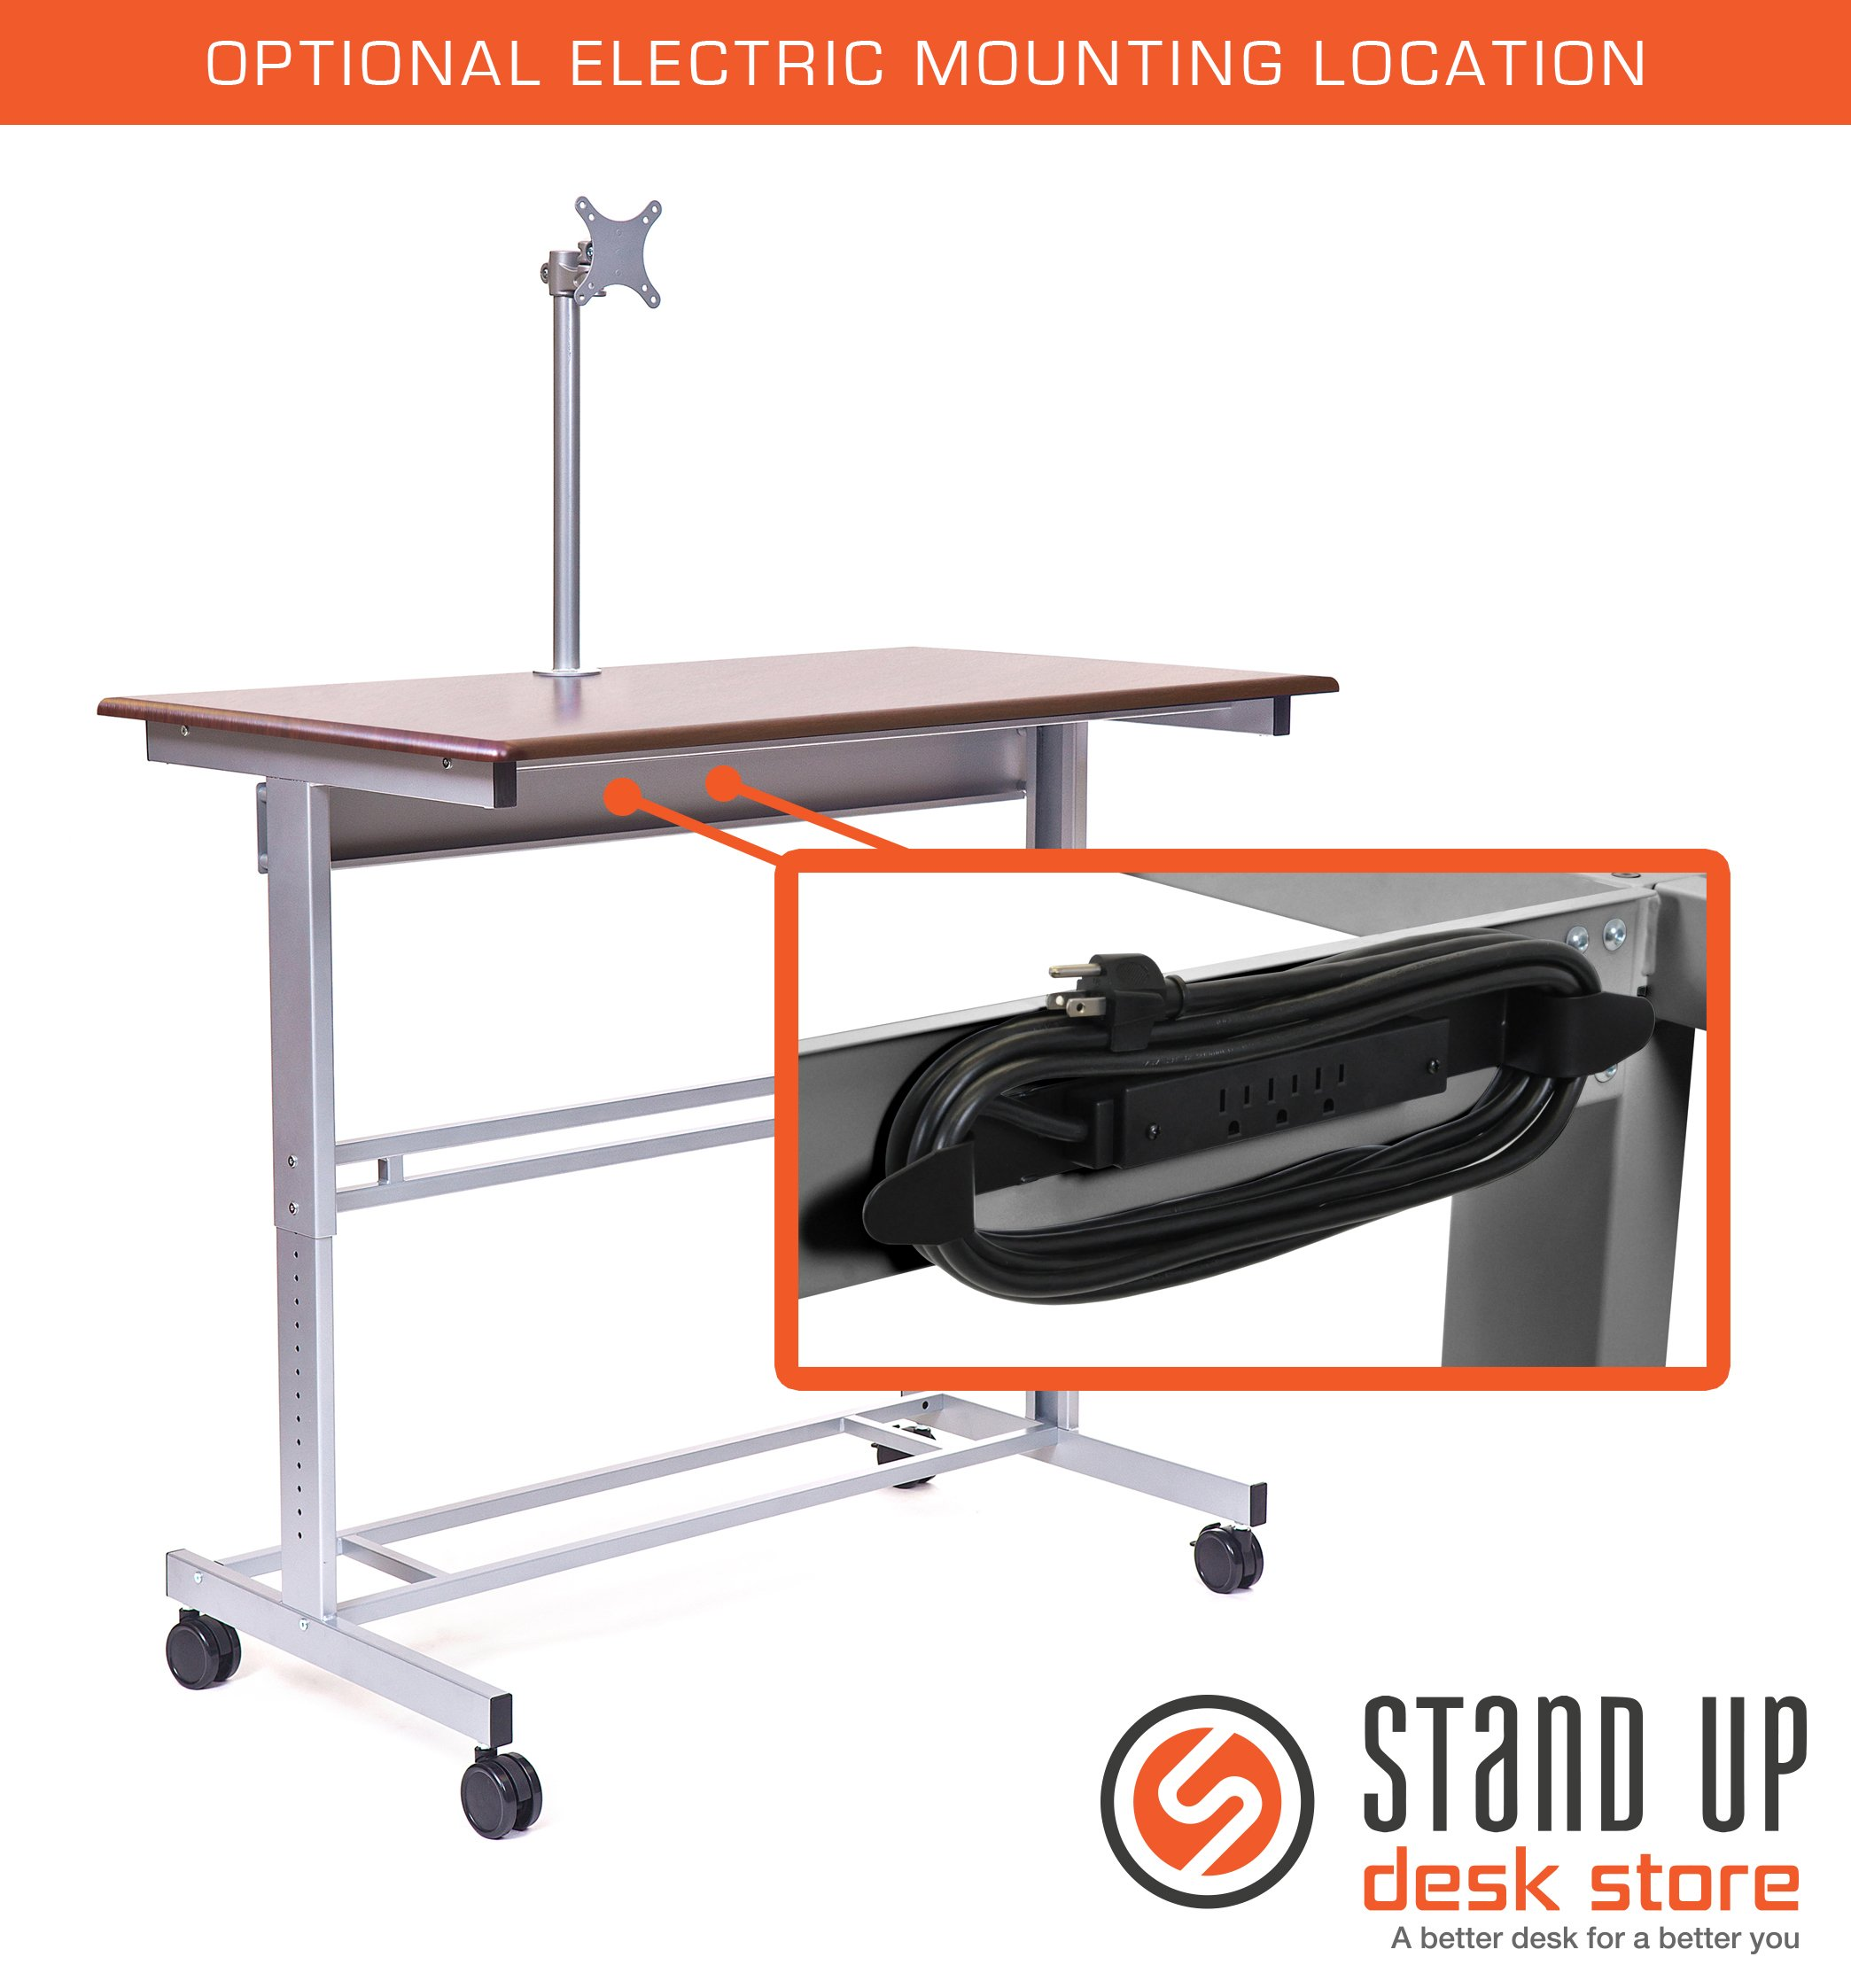 w birch frame x drawing store stand d product table surface top sud with height pqlll silver up adjustable and desk drafting